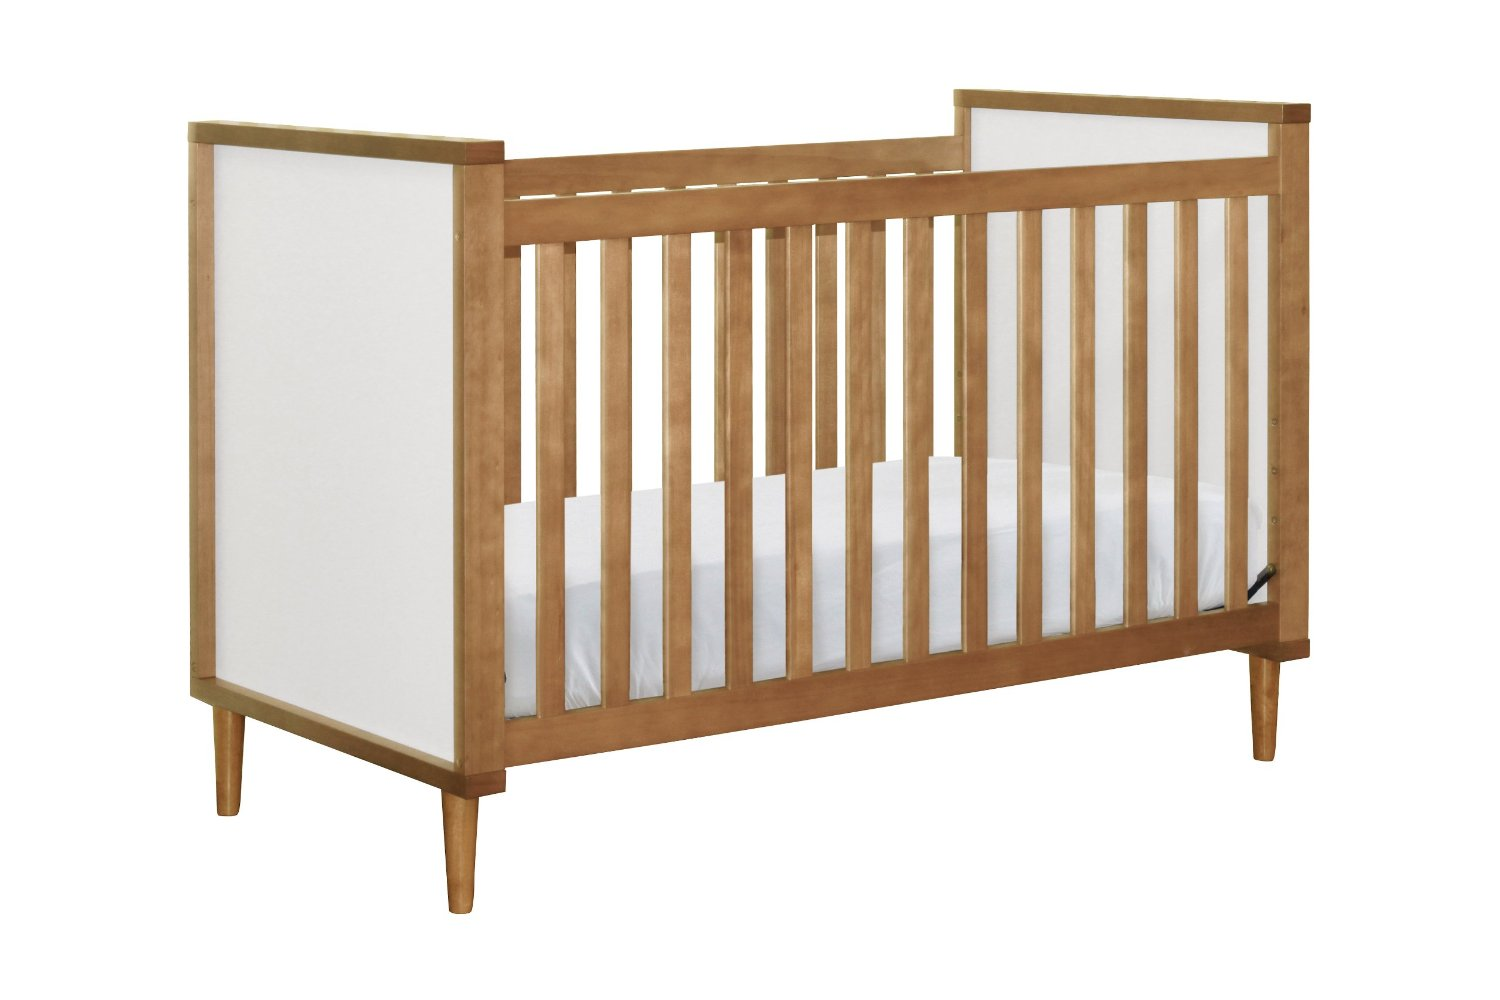 Wooden Crib By Babyletto With White Bedding For Nursery Furniture Ideas